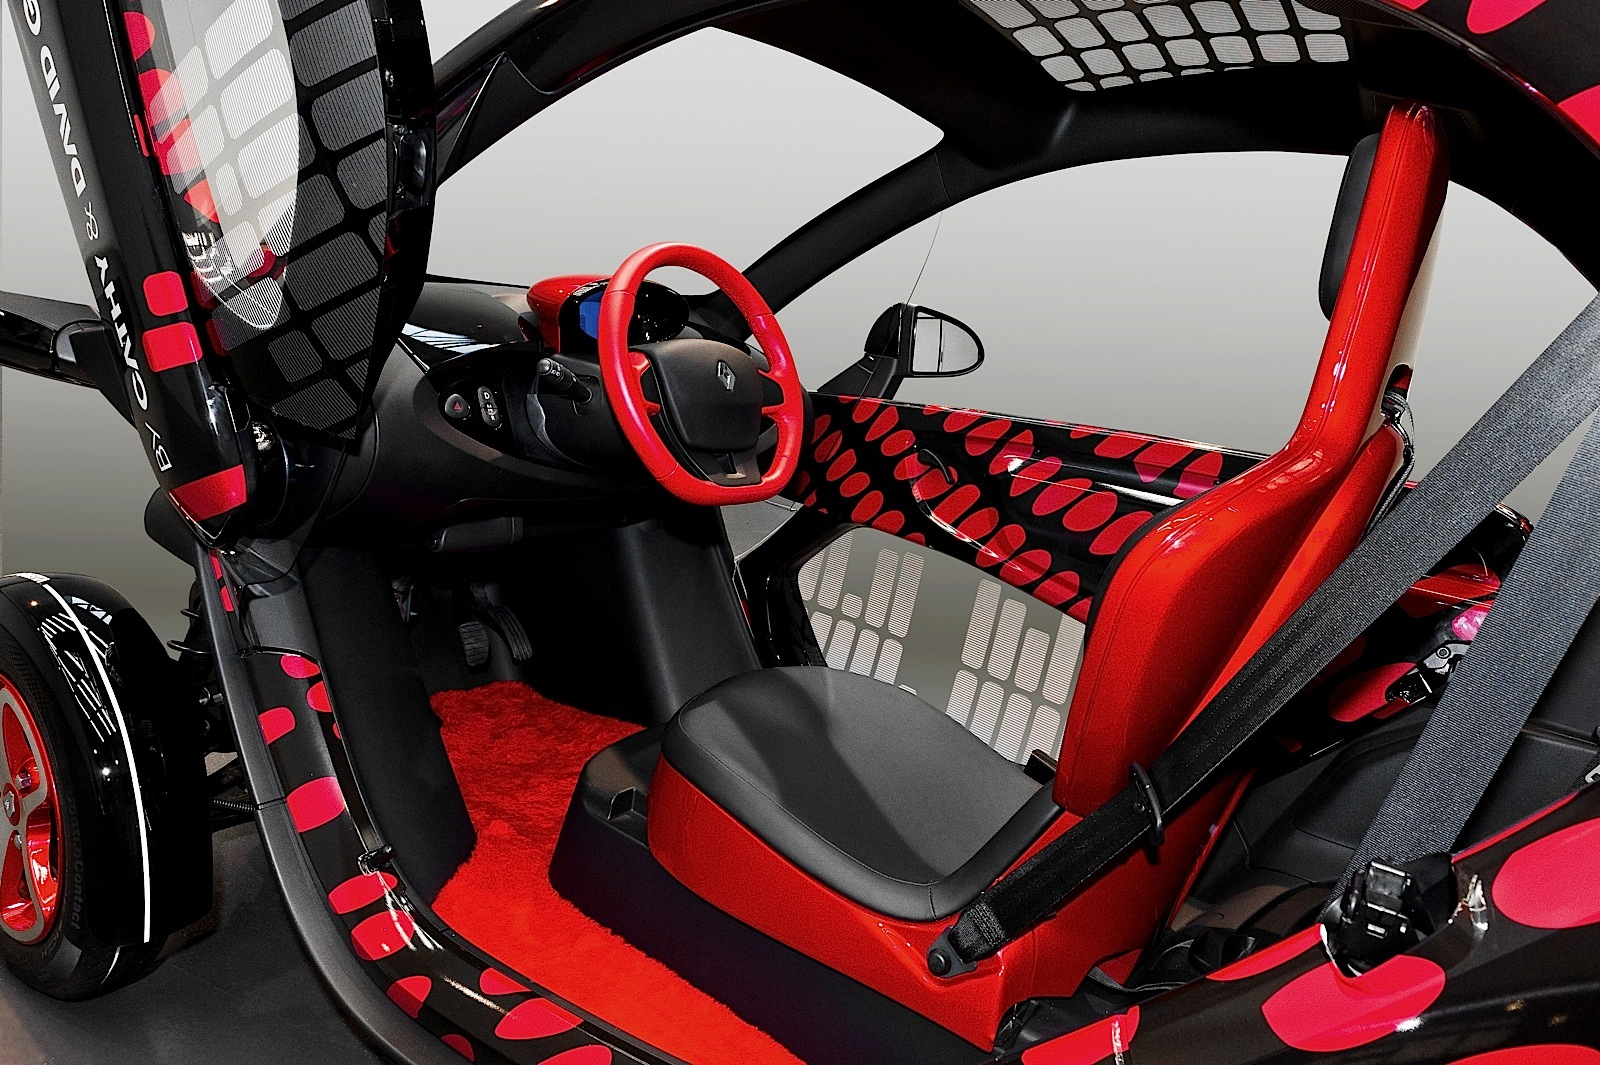 renault twizy specs photos 2012 2013 2014 2015 2016 2017 2018 2019 autoevolution. Black Bedroom Furniture Sets. Home Design Ideas